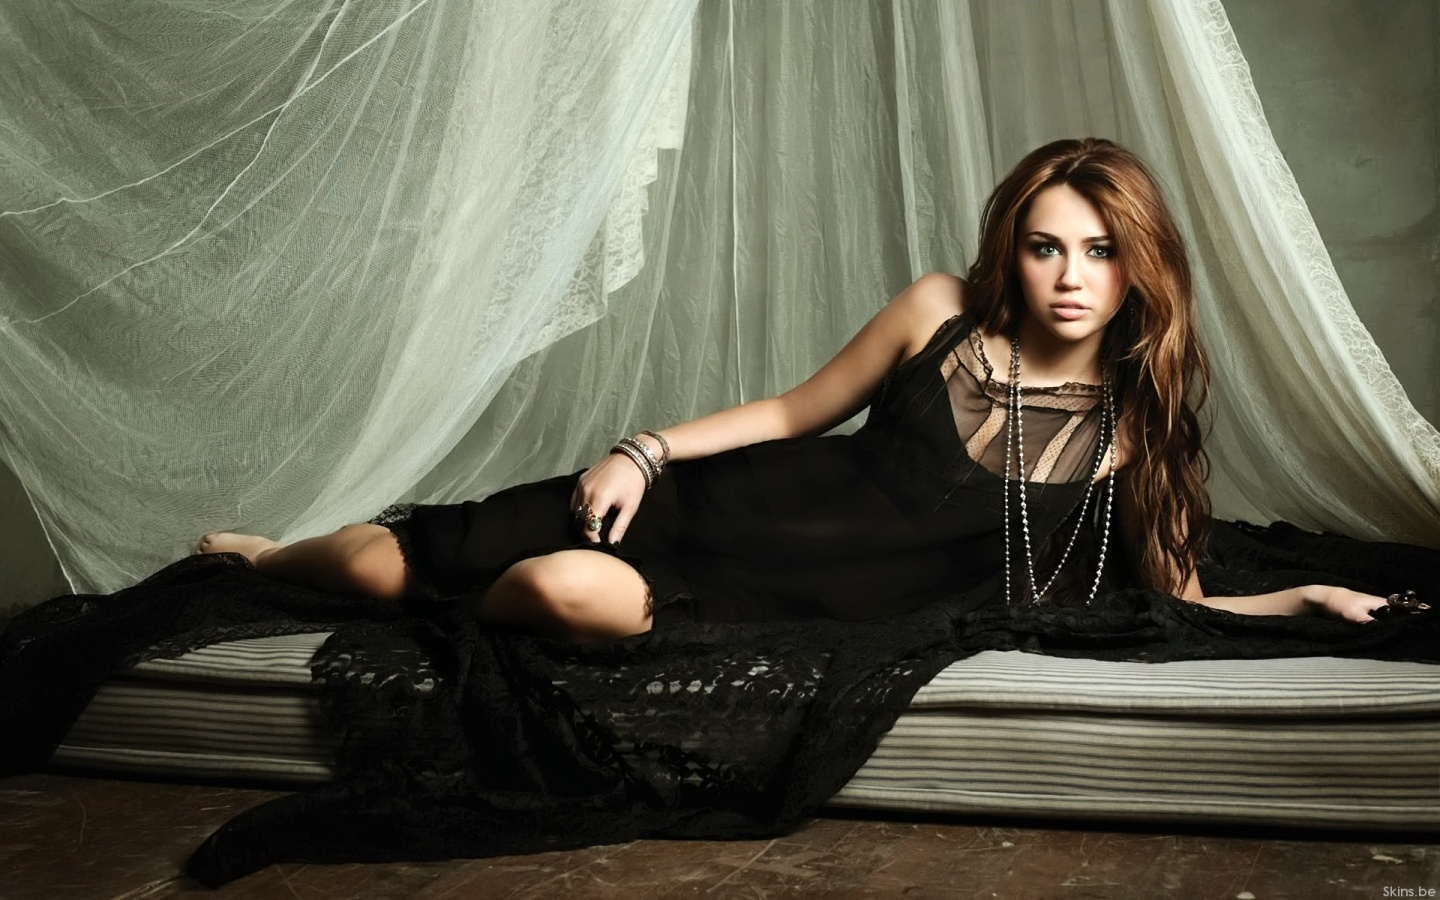 Young Hollywood Stars Images Miley Cyrus Hd Wallpaper And